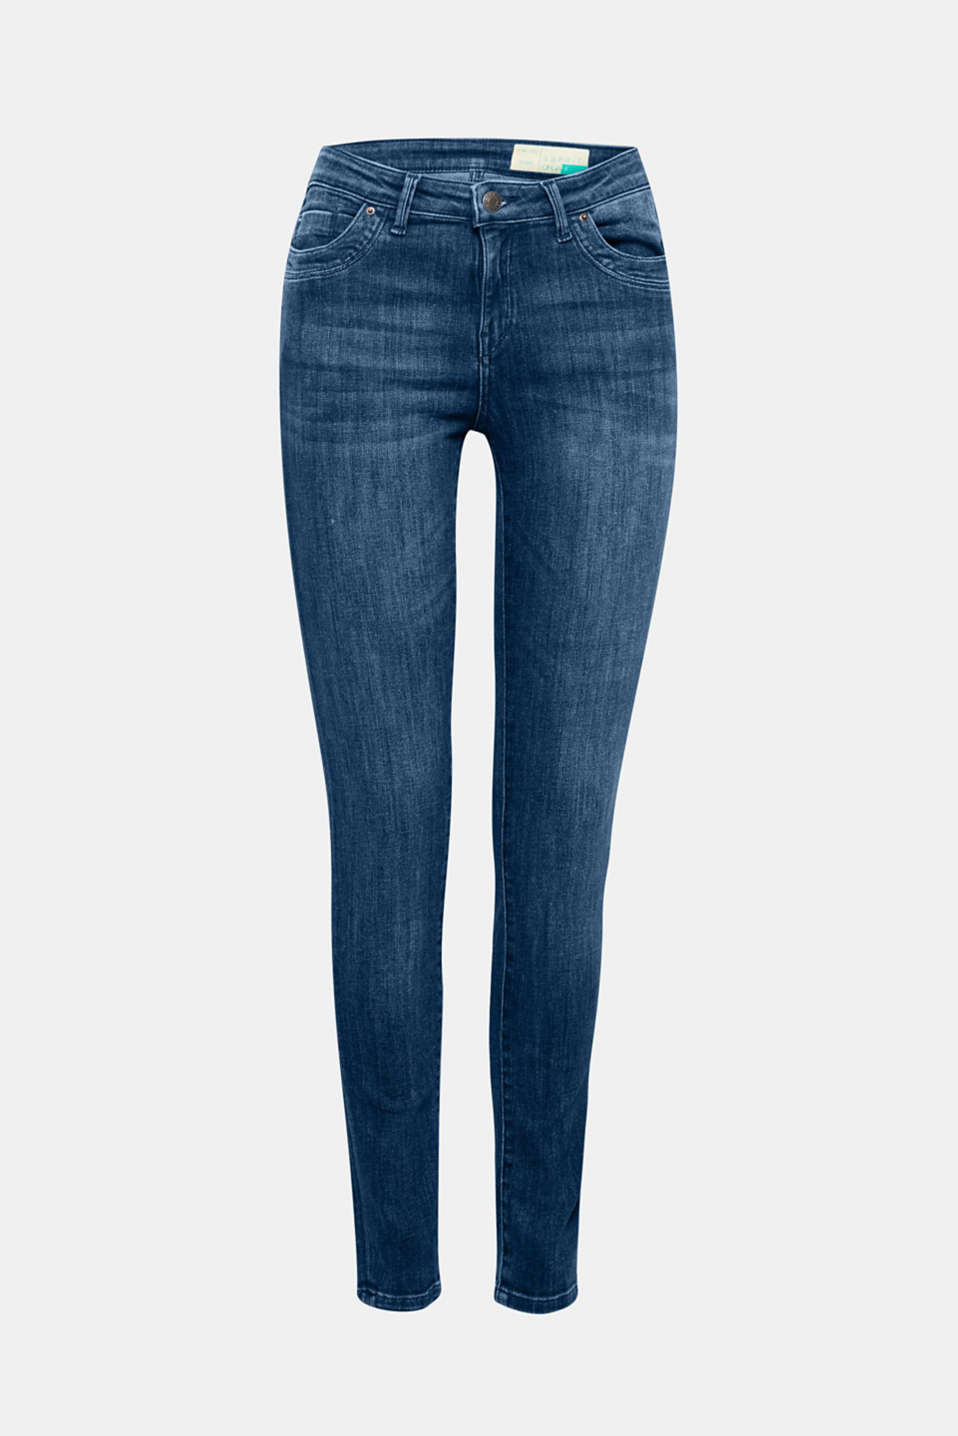 Made of premium organic cotton: These slightly thicker stretch denim jeans come in a skinny fit!